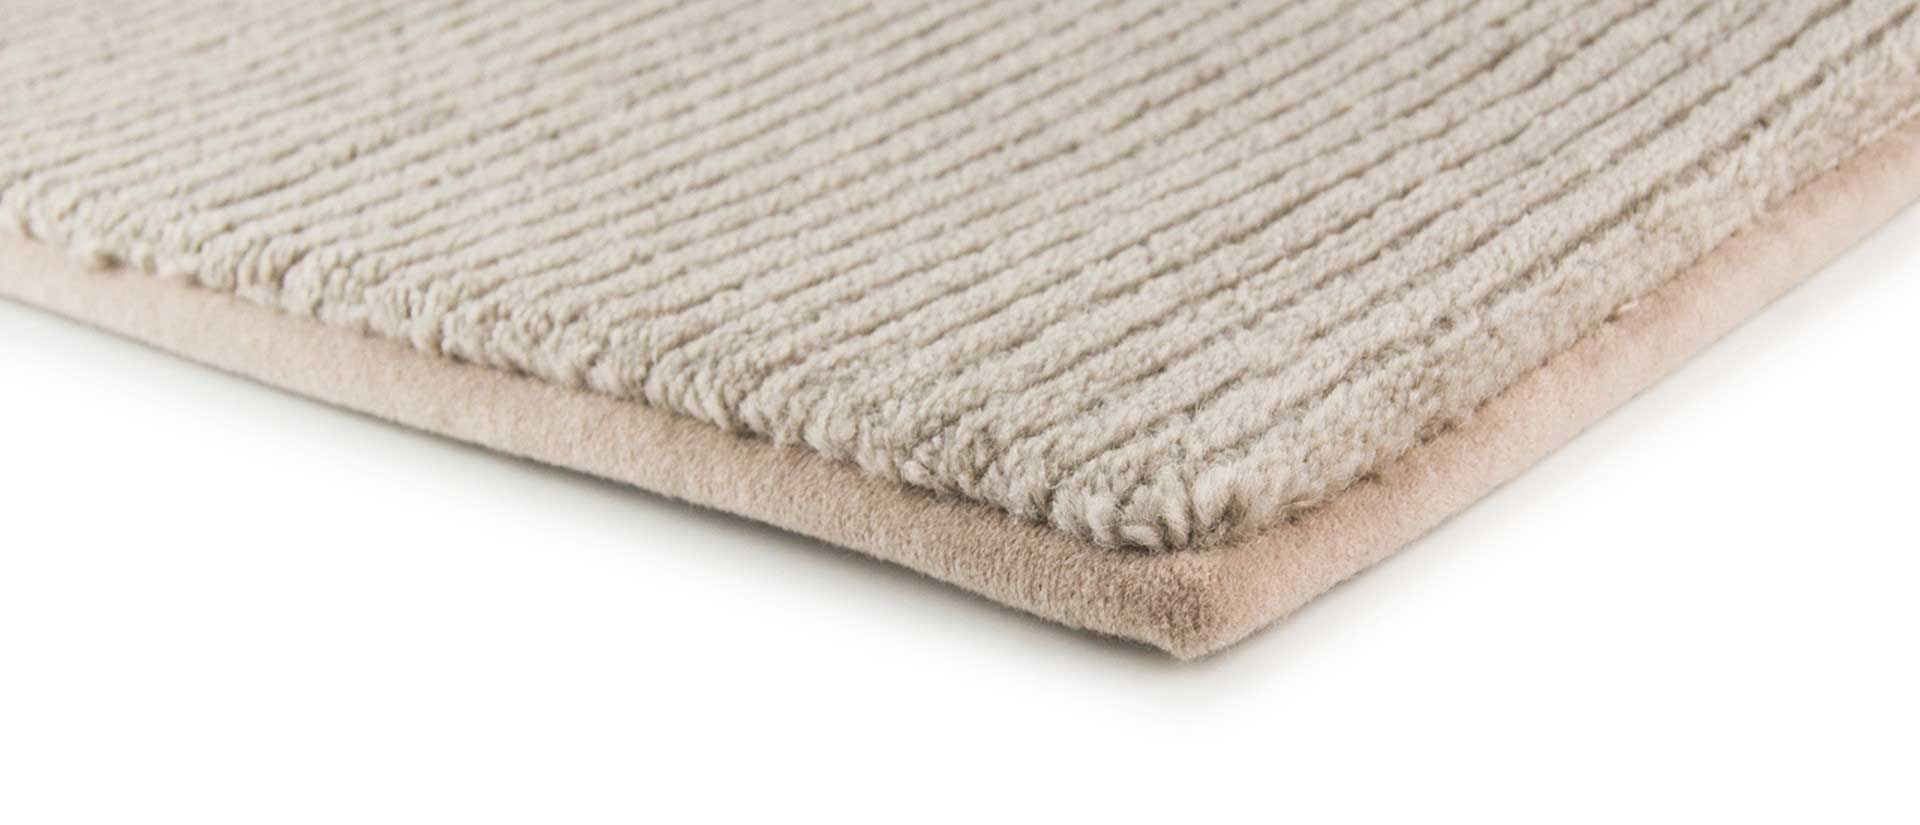 Wool Carpets Itc